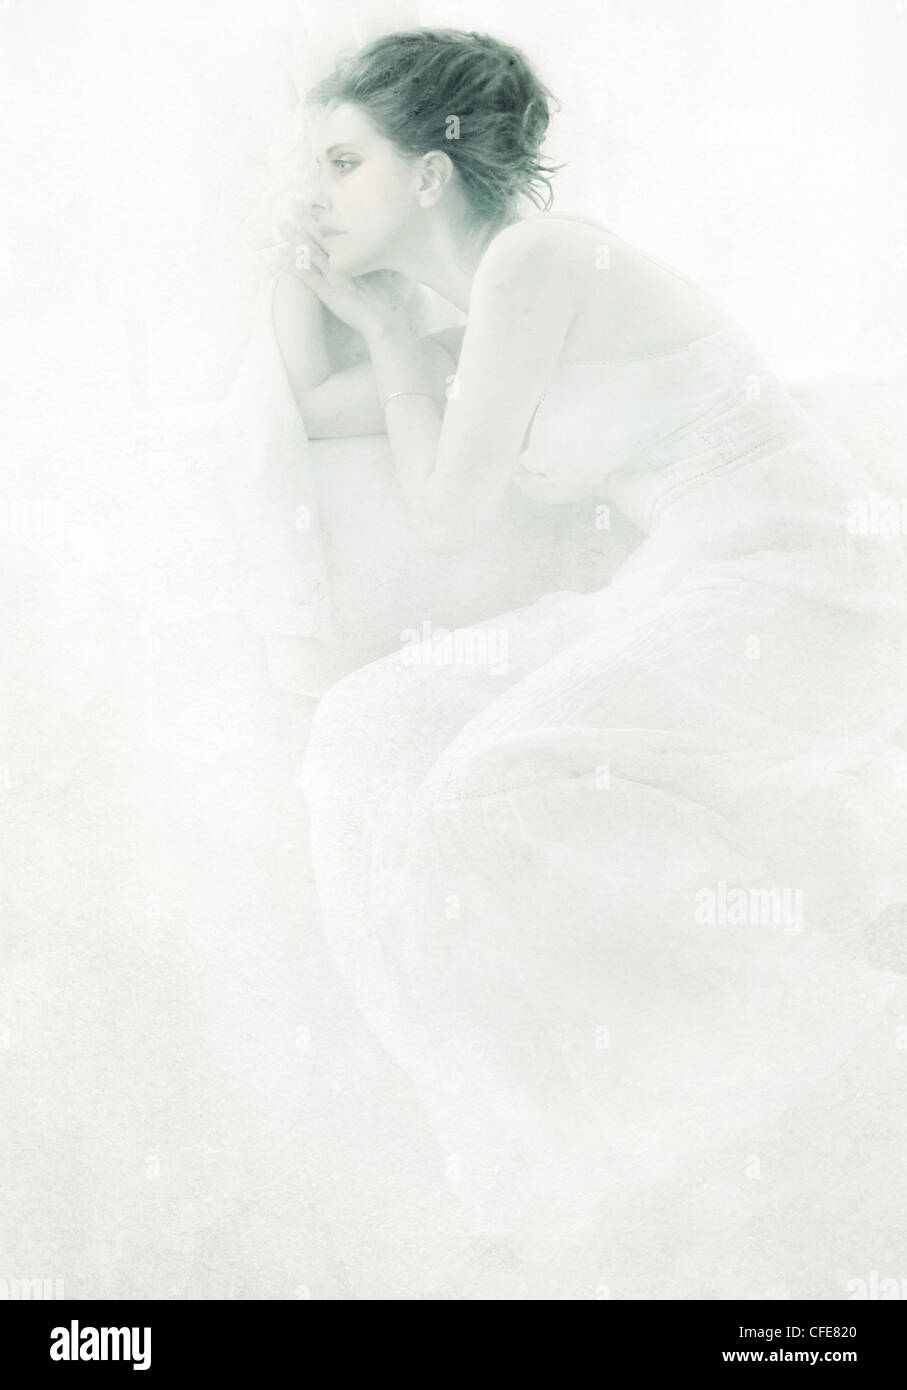 A young woman relaxing wearing a white dress looking into distance - Stock Image